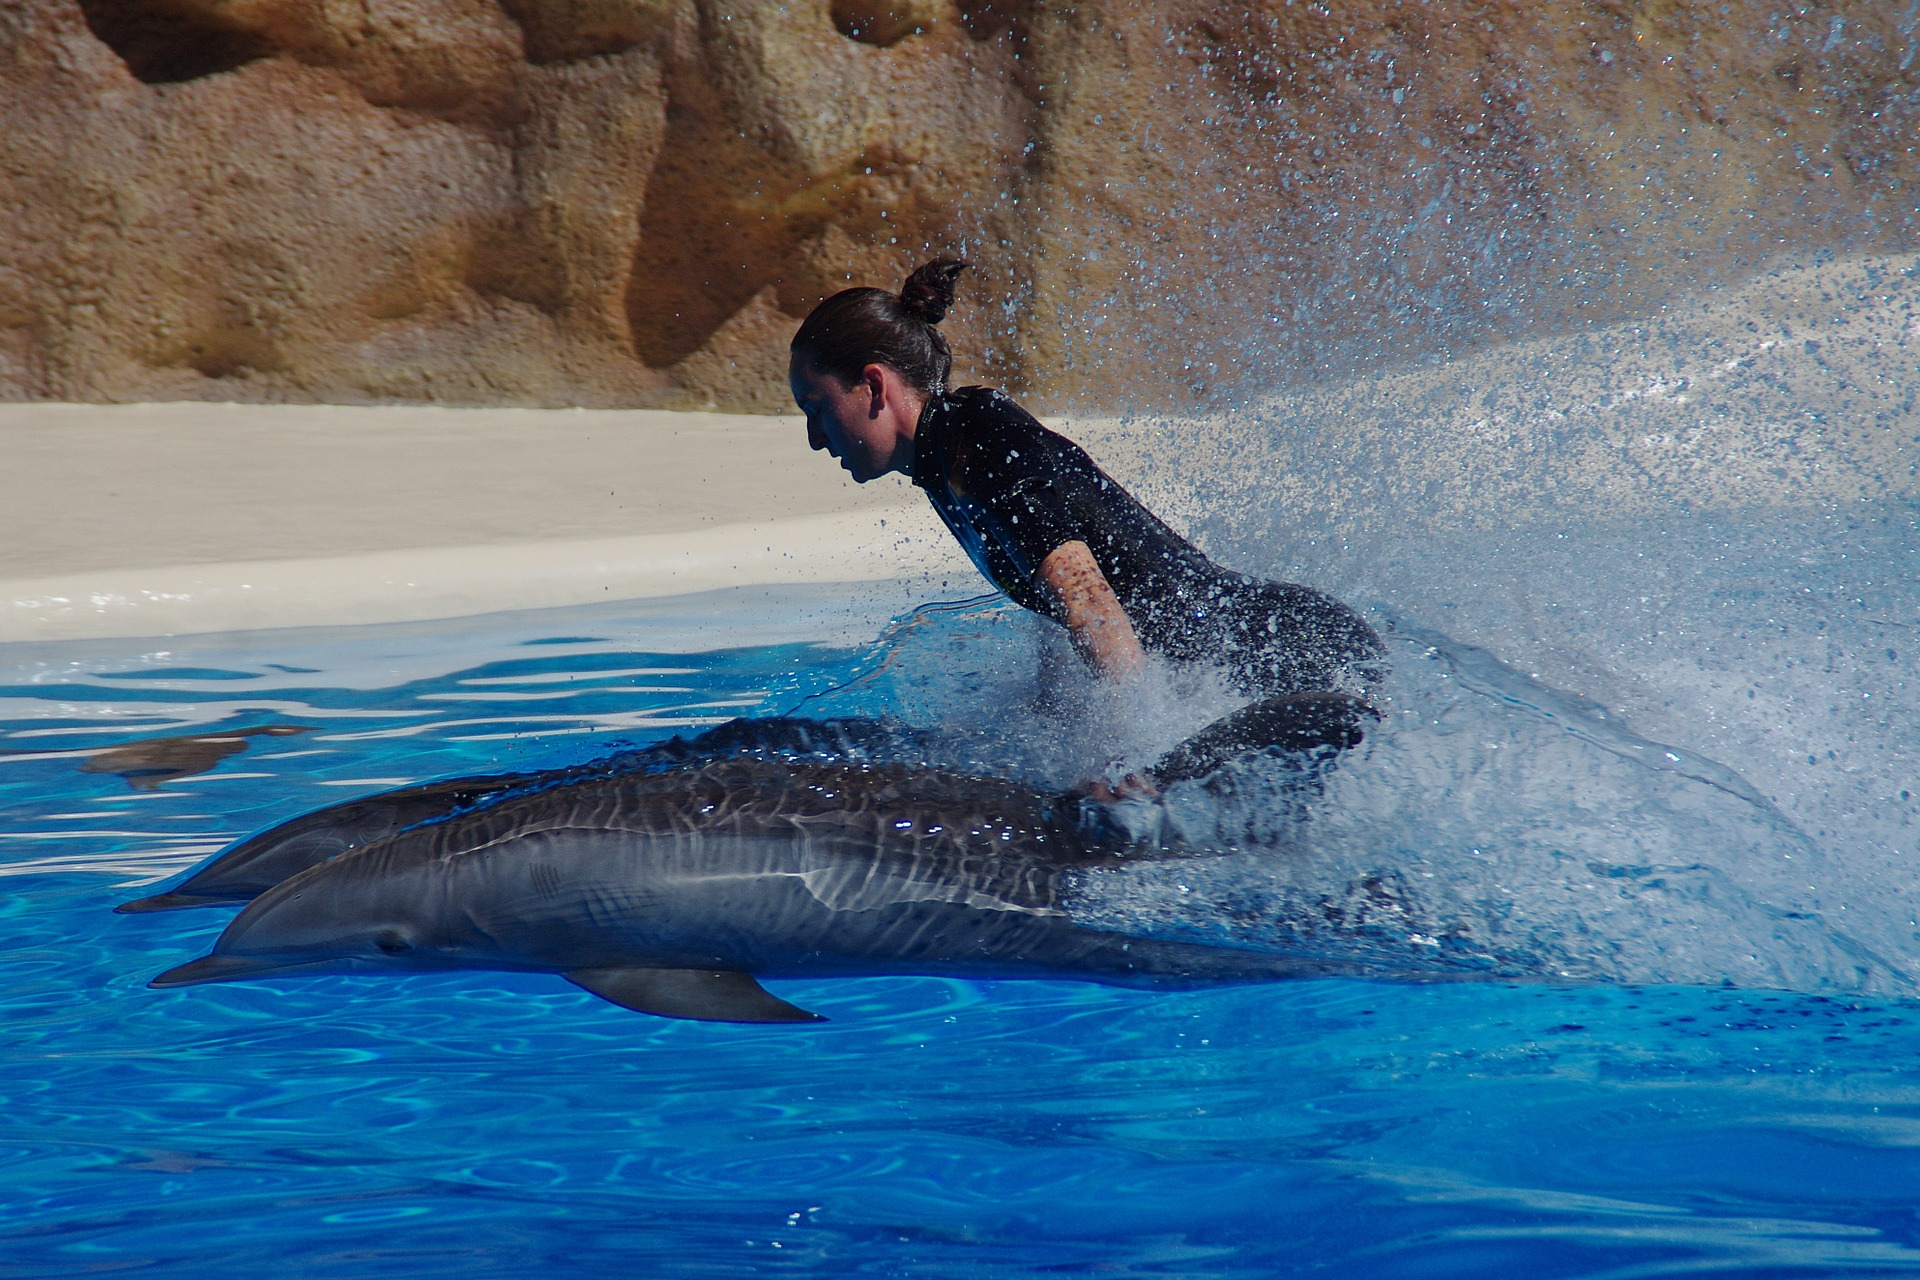 Swimming with dolphins in captivity